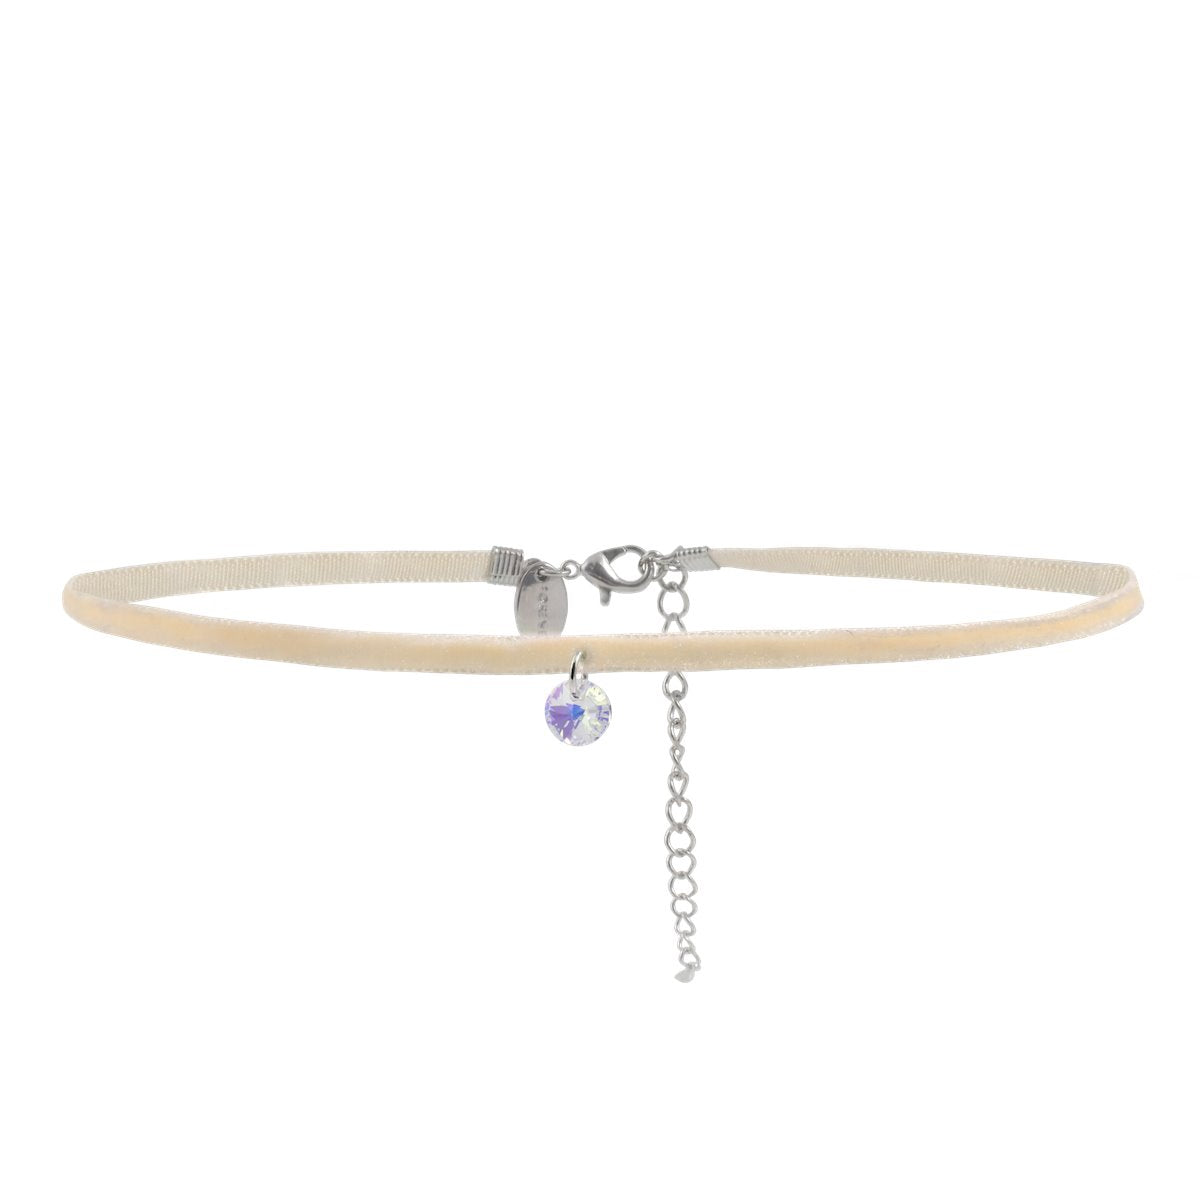 SMALL RIVOLI CHOKER NECKLACE BEIGE AURORA BOREALIS NECKLACE - FOREVER - ESSENTIALS - AURORA BOREALIS 001